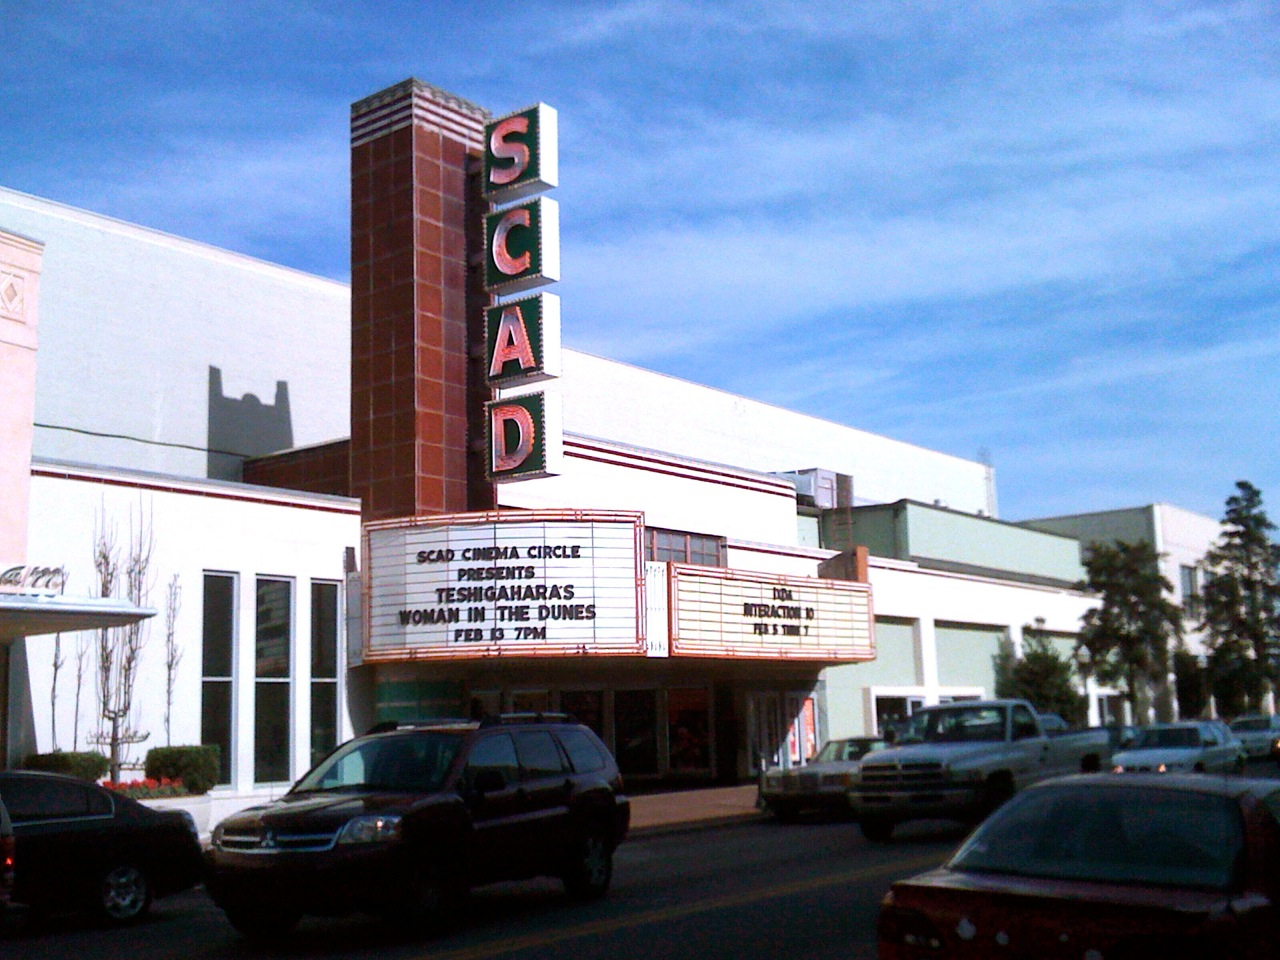 SCAD theater